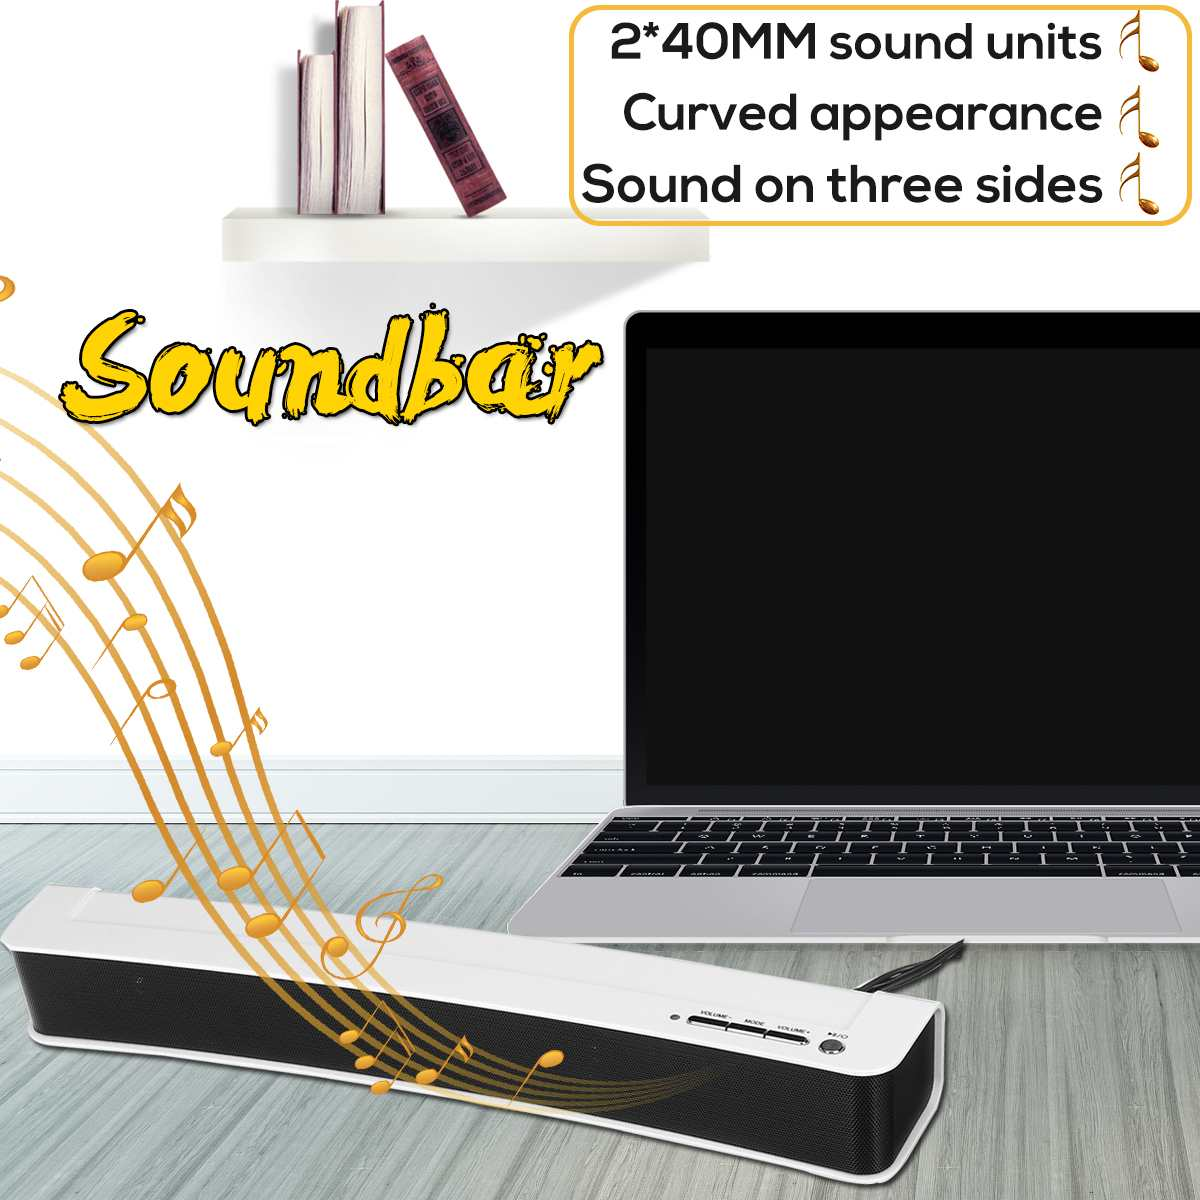 Portable USB Soundbar Speaker For Computer PC Home Stereo Curved Sound Bar Bass Speaker System